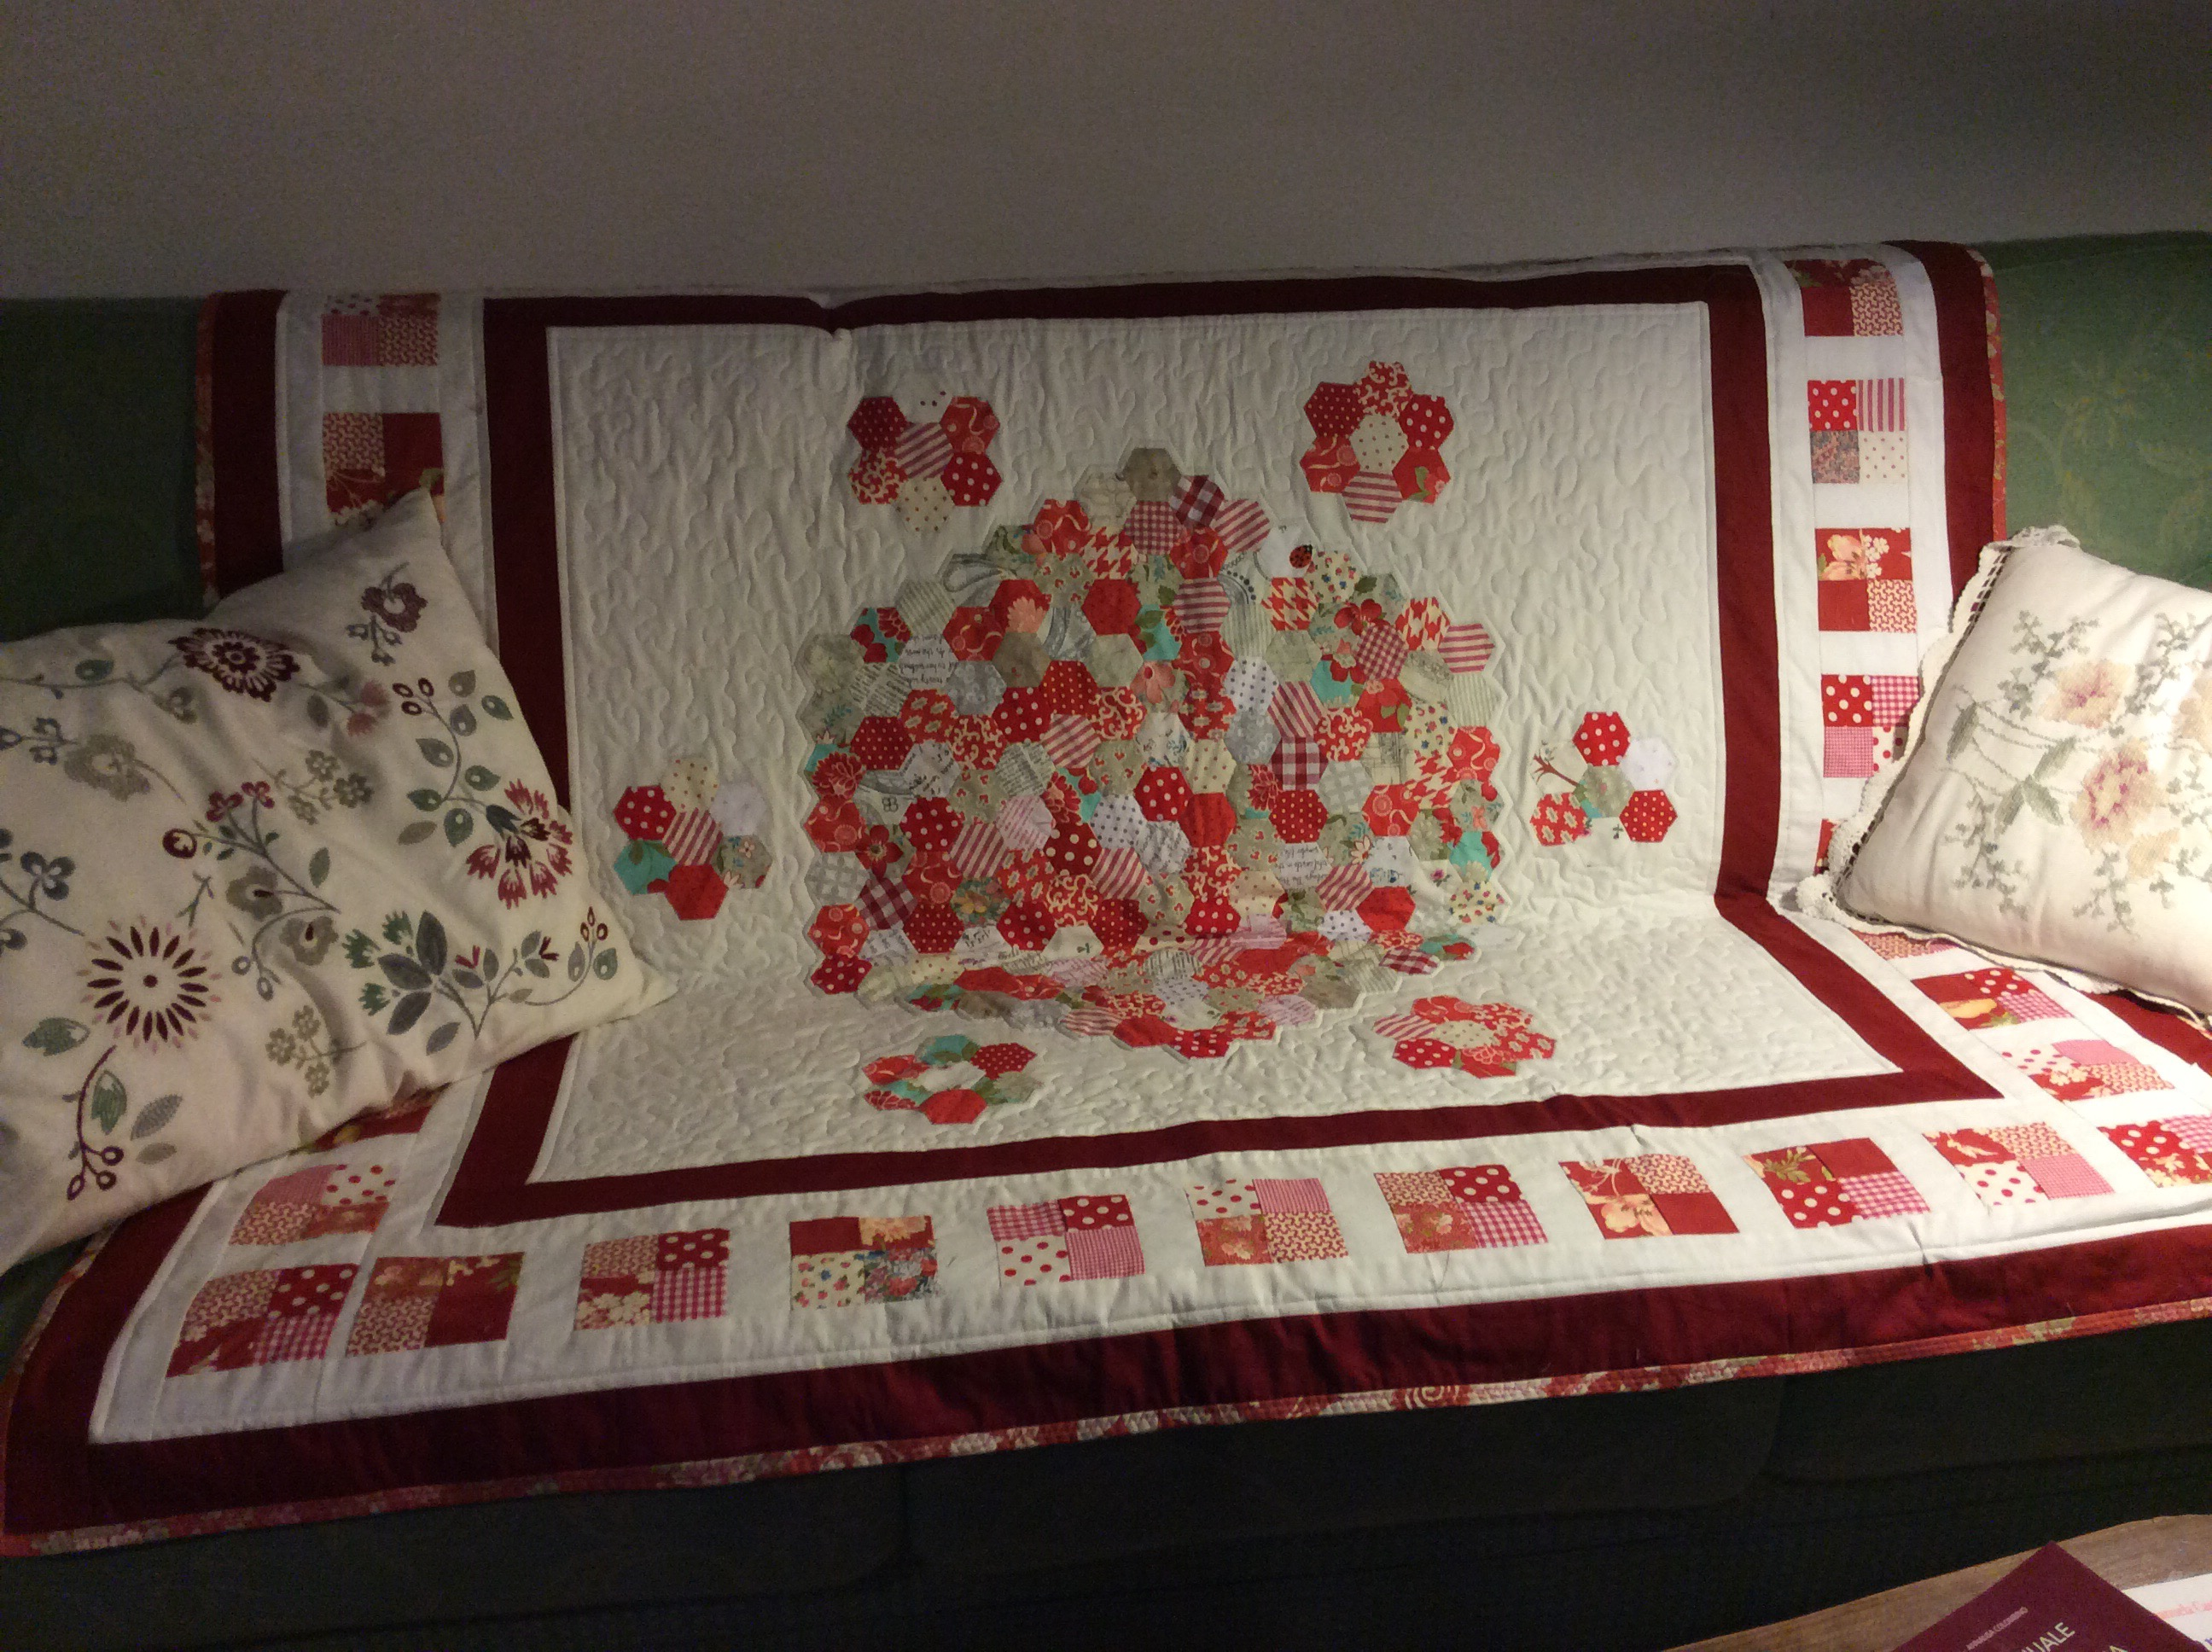 The Red Quilt English Paper Pieced Middle As A Travelling Project 2015